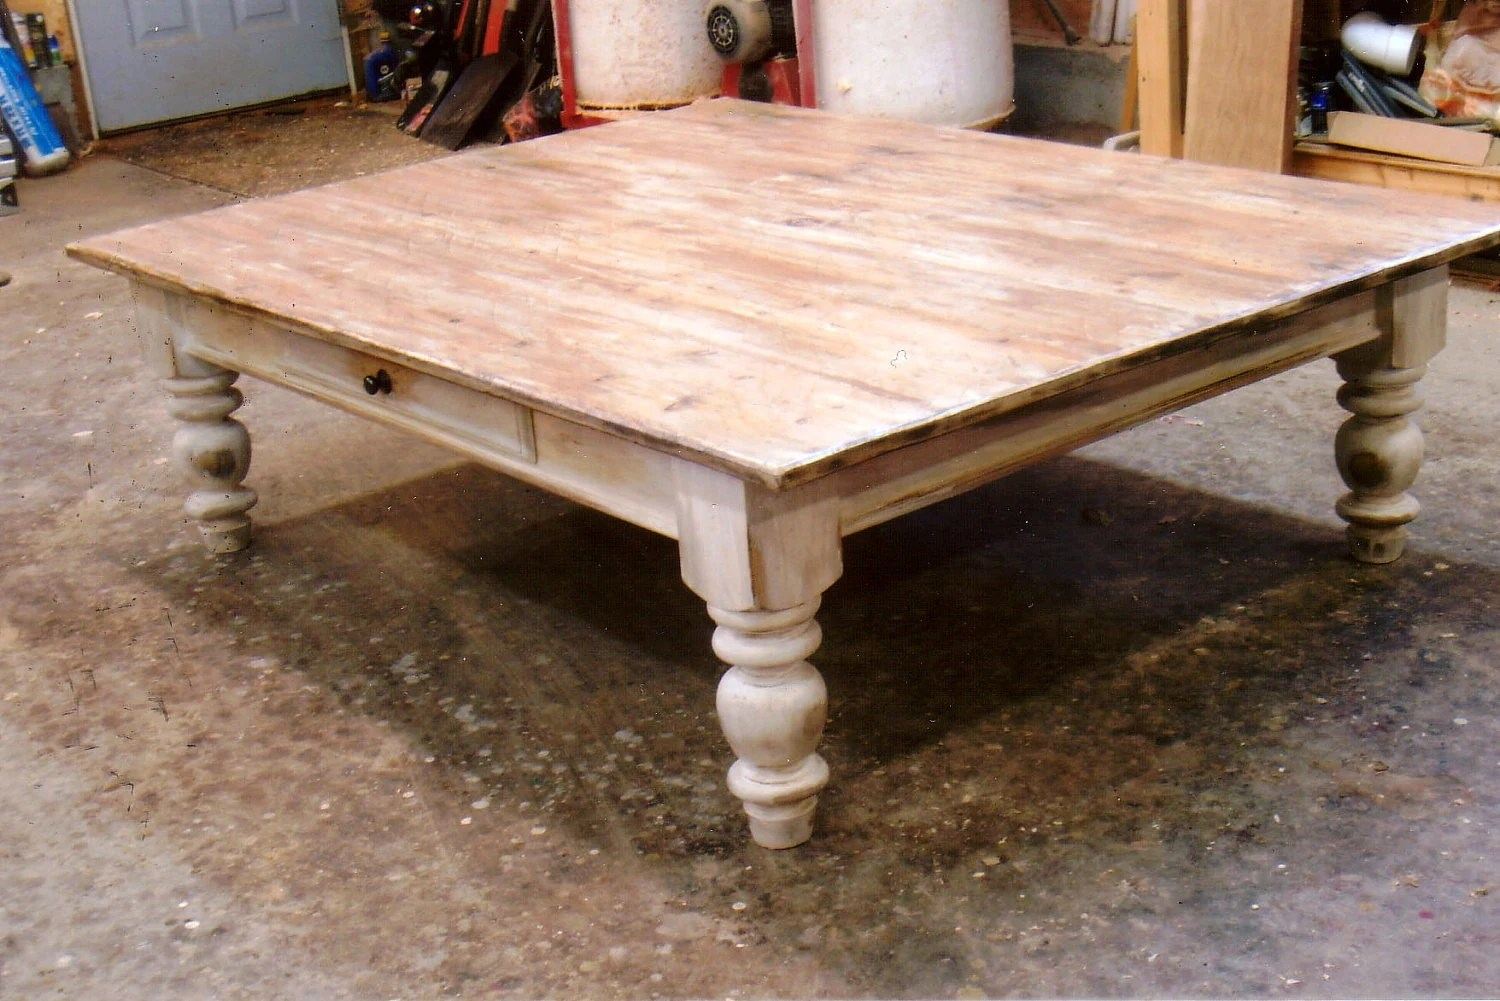 Farmhouse Coffee Table Etsy Farmhouse White Scrubbed Pine Coffee Table By Furnacebrookiron